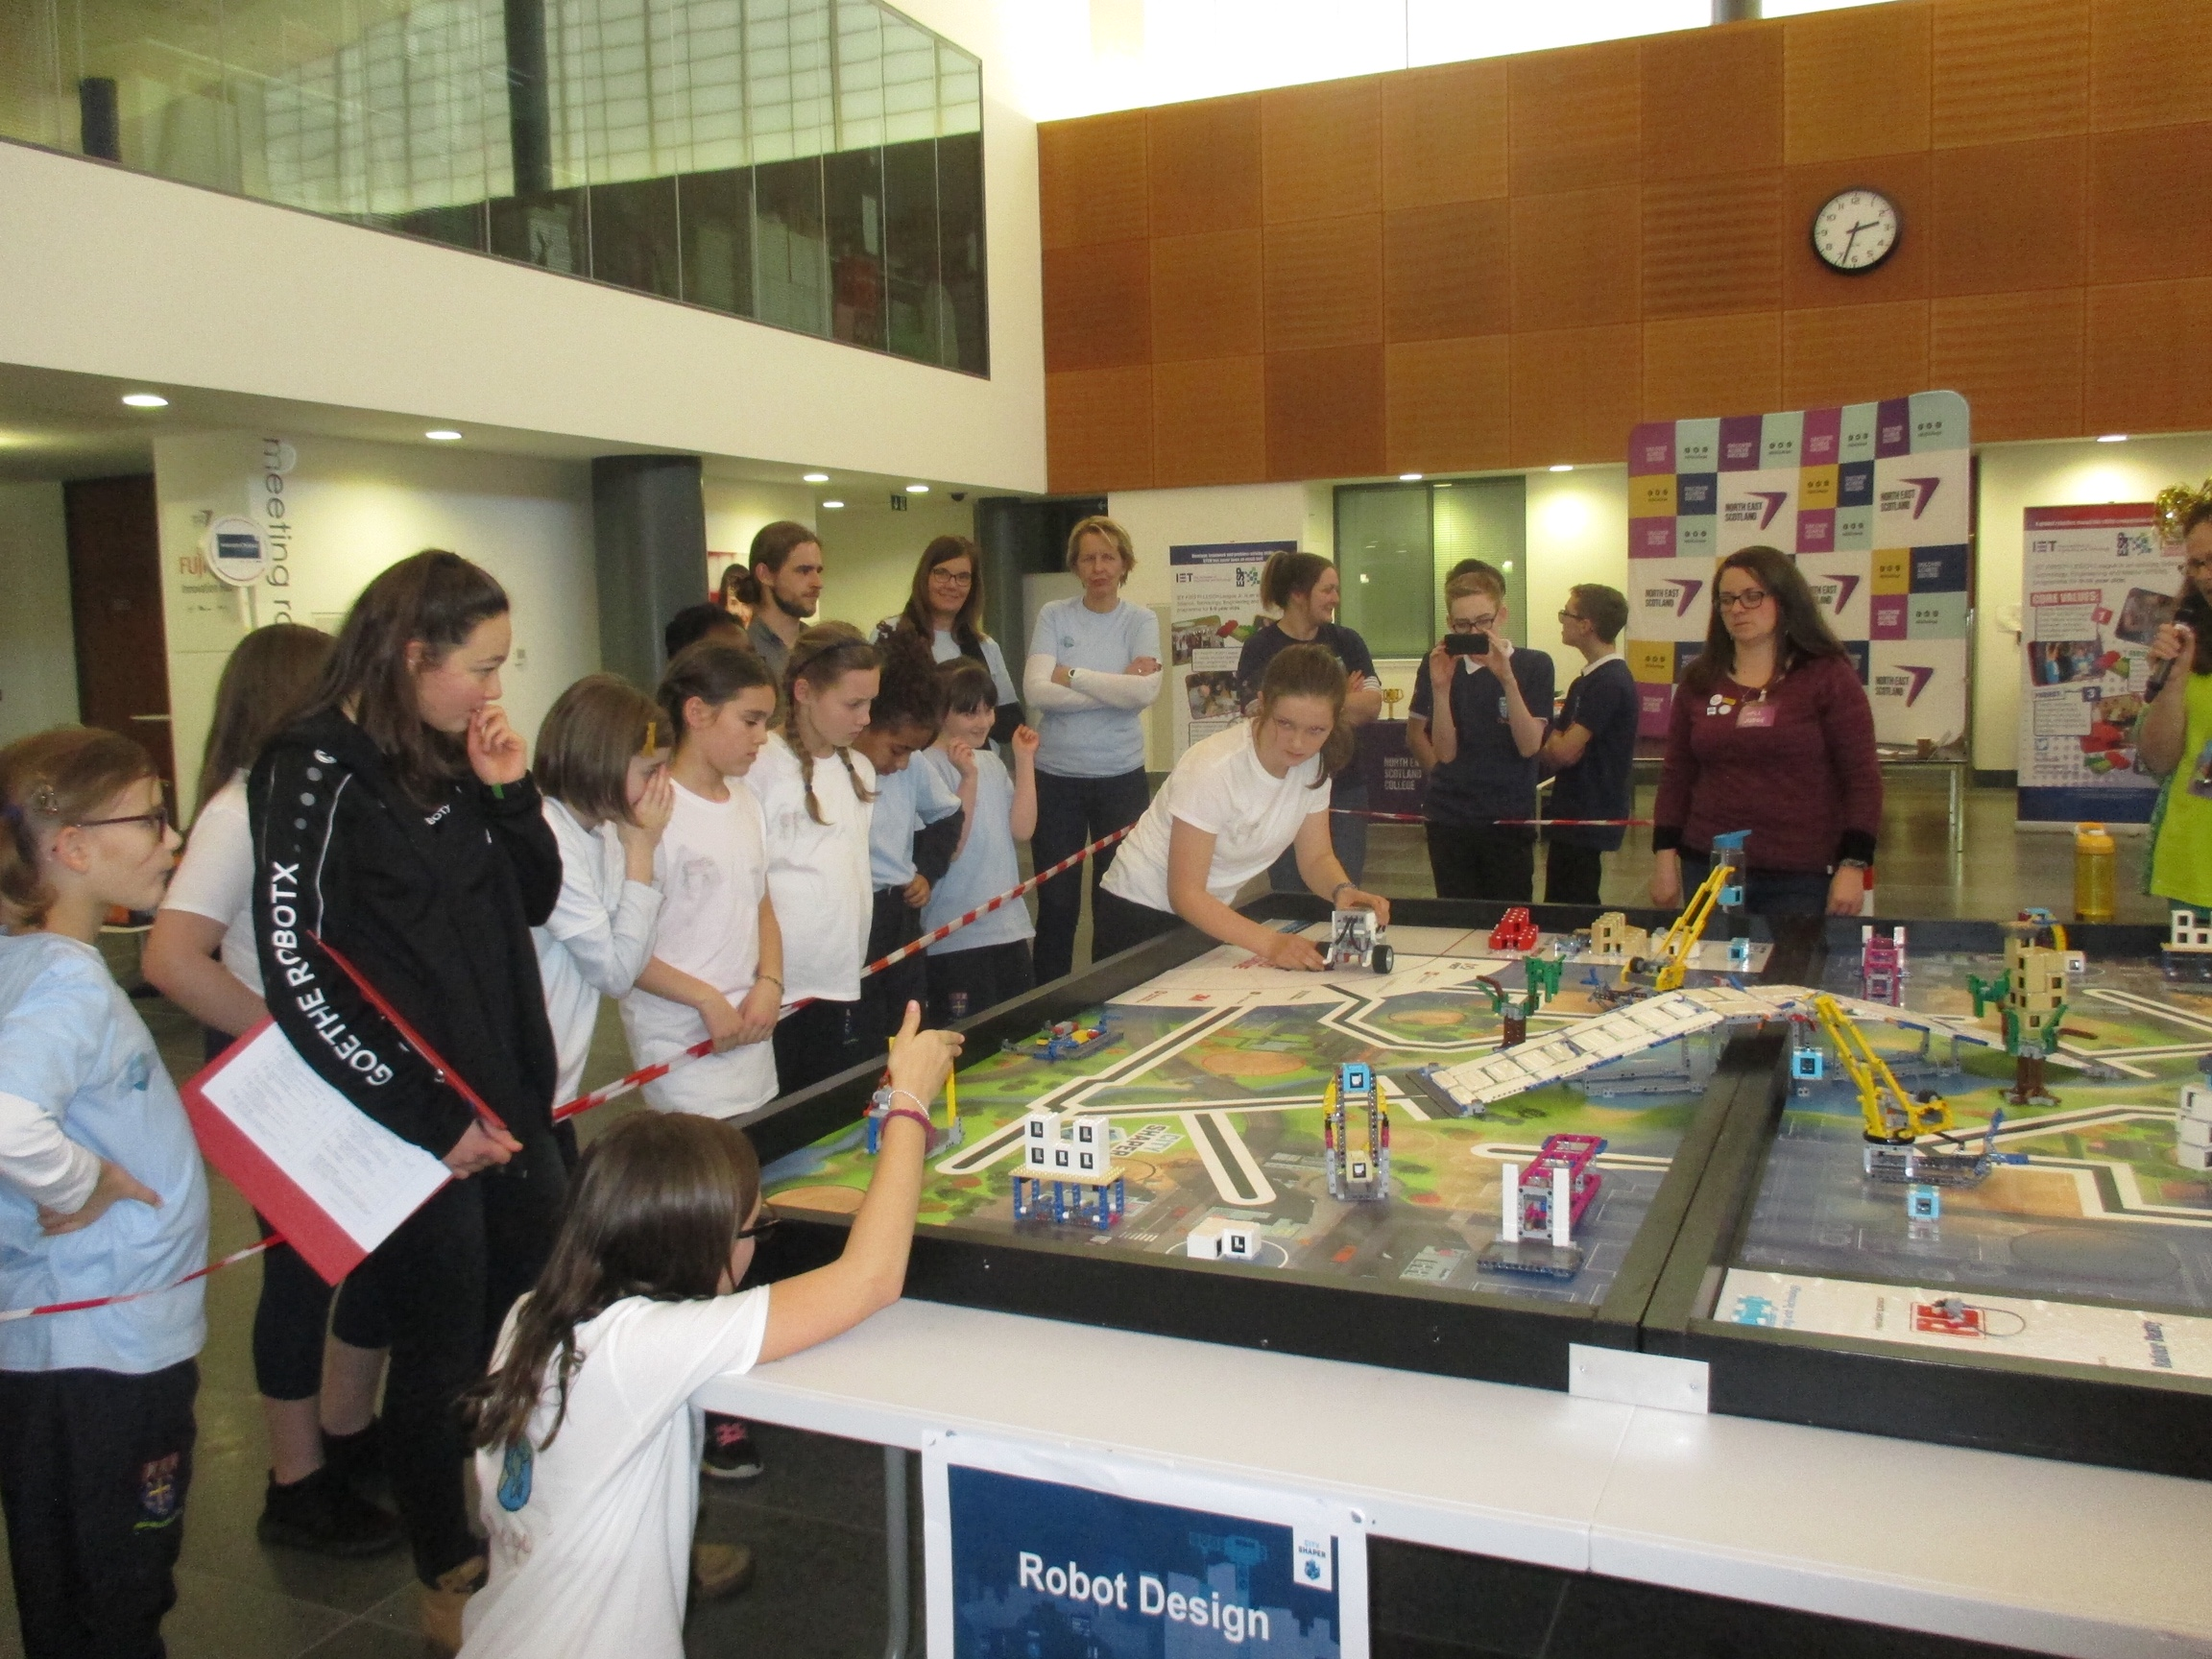 Success for Lego Teams at First Lego League Tournament